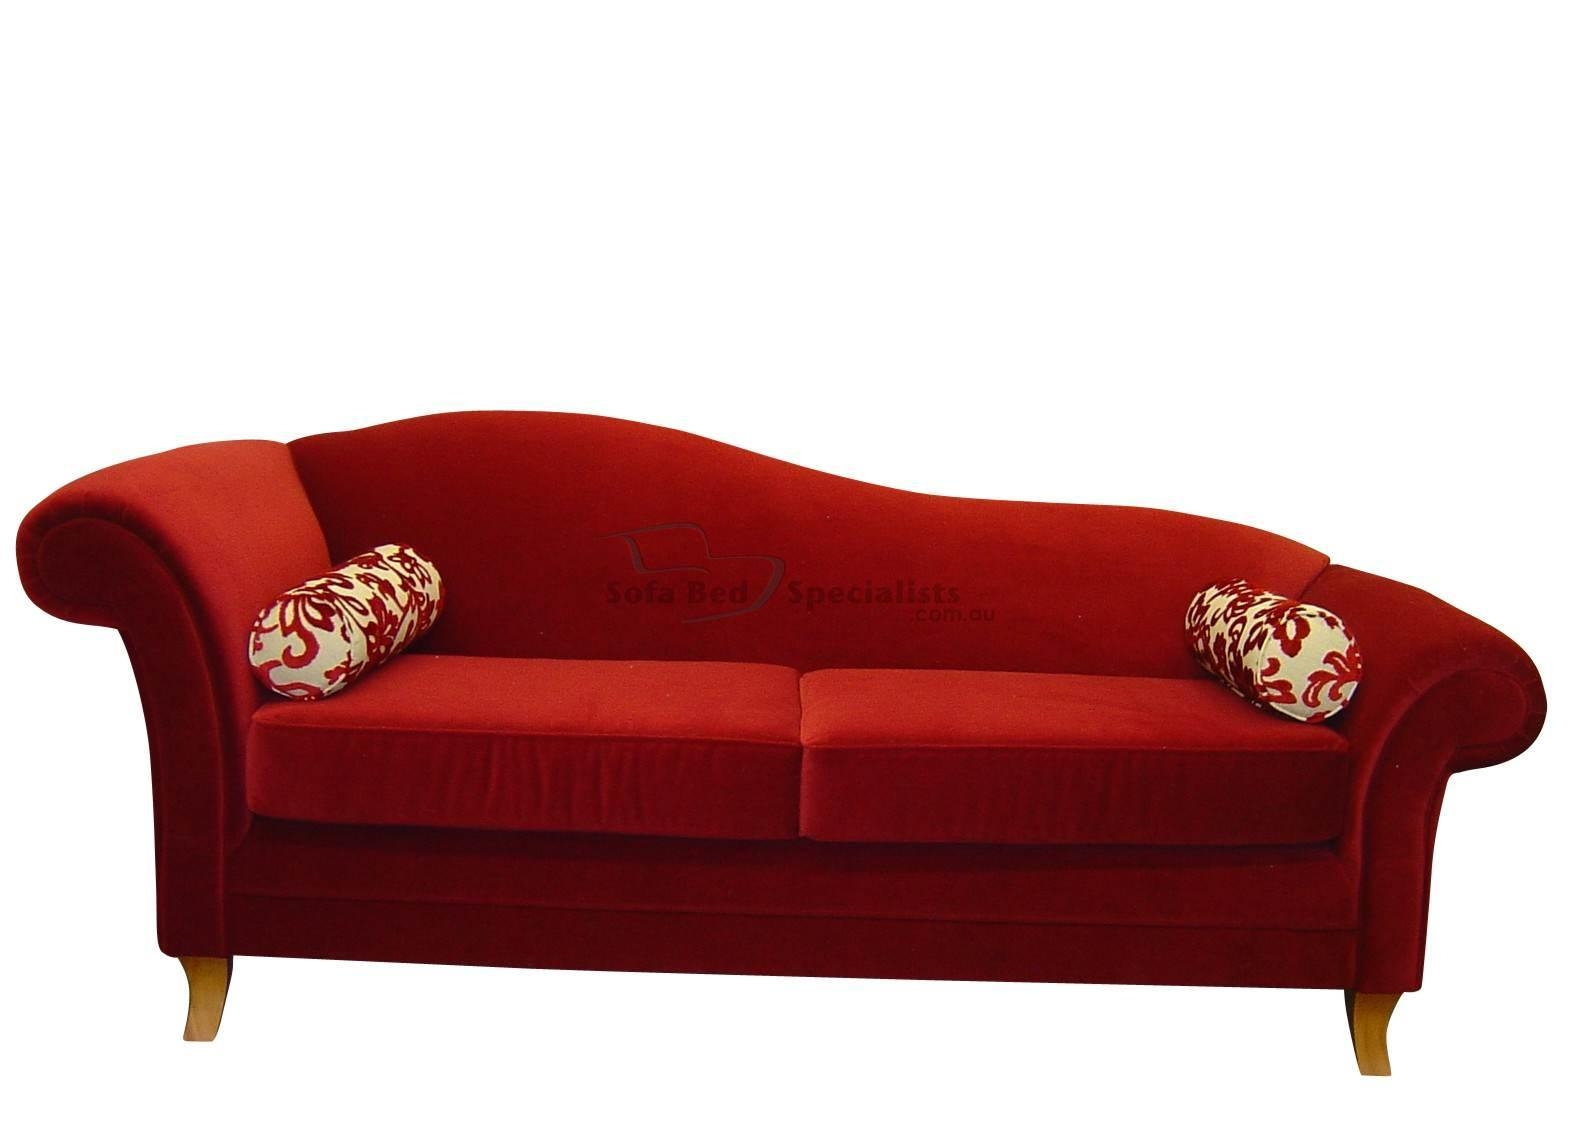 20 choices of red sofa beds ikea sofa ideas for Furniture sofa bed